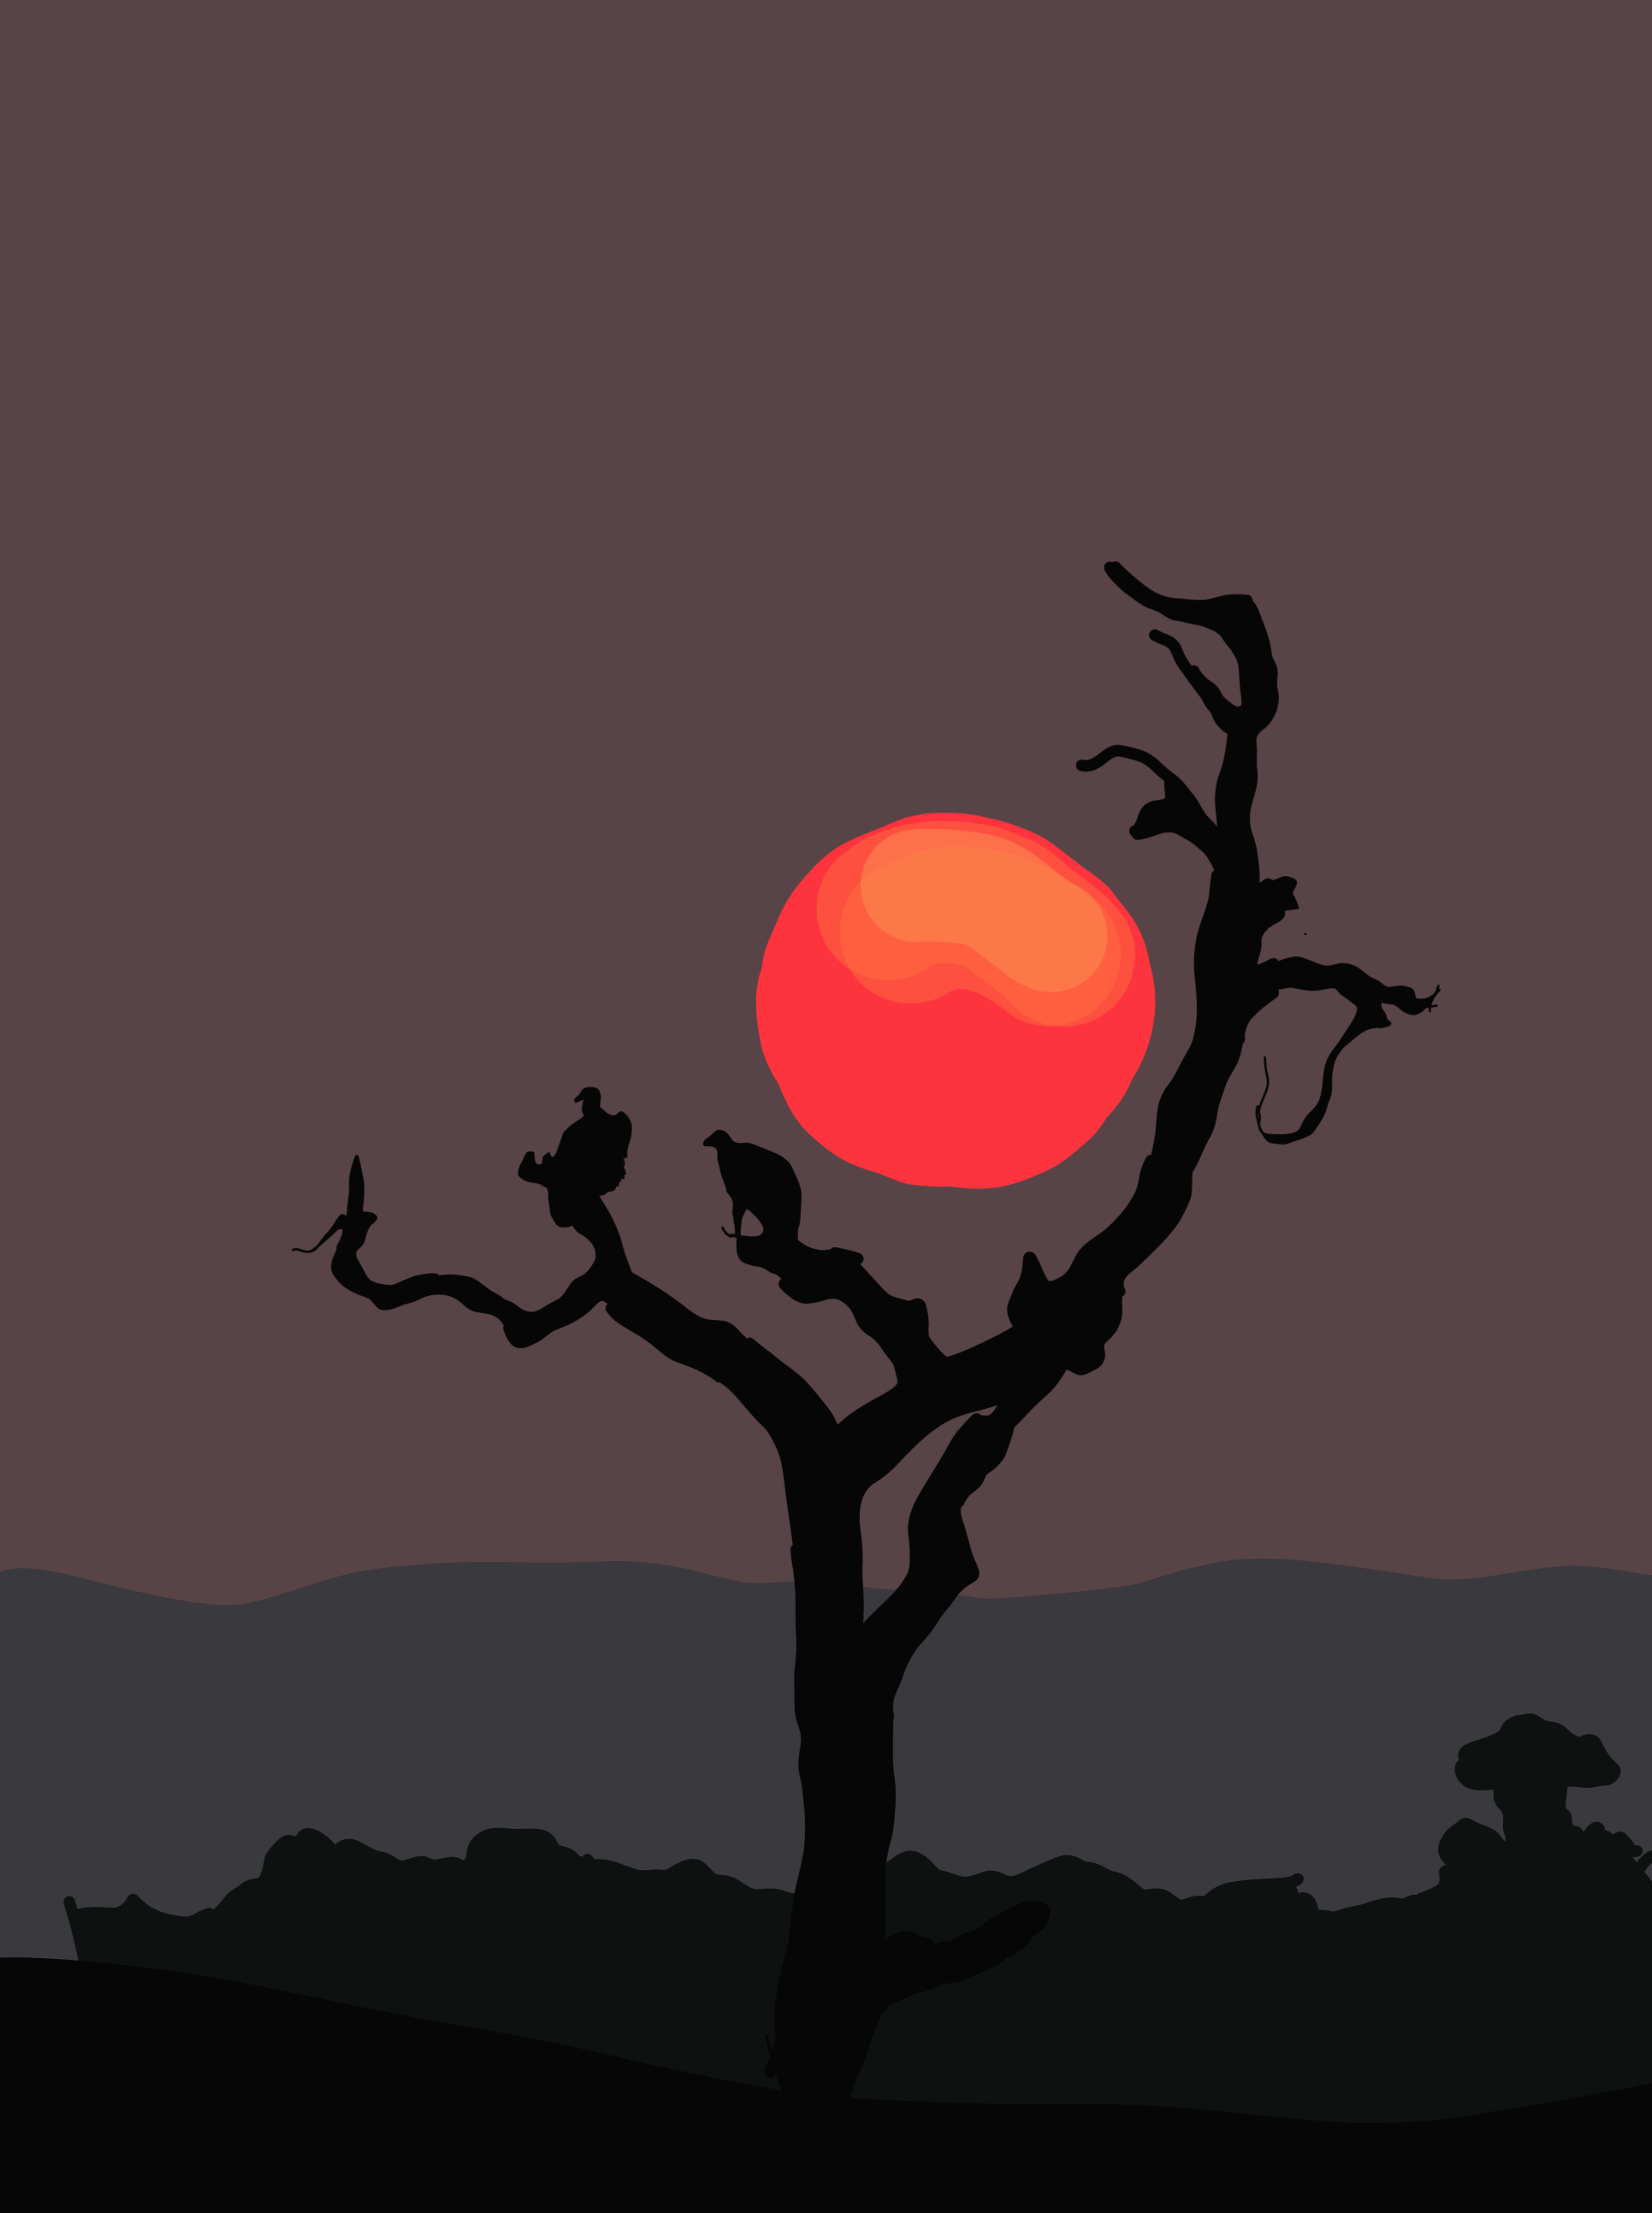 Sunset in a jungle illustration